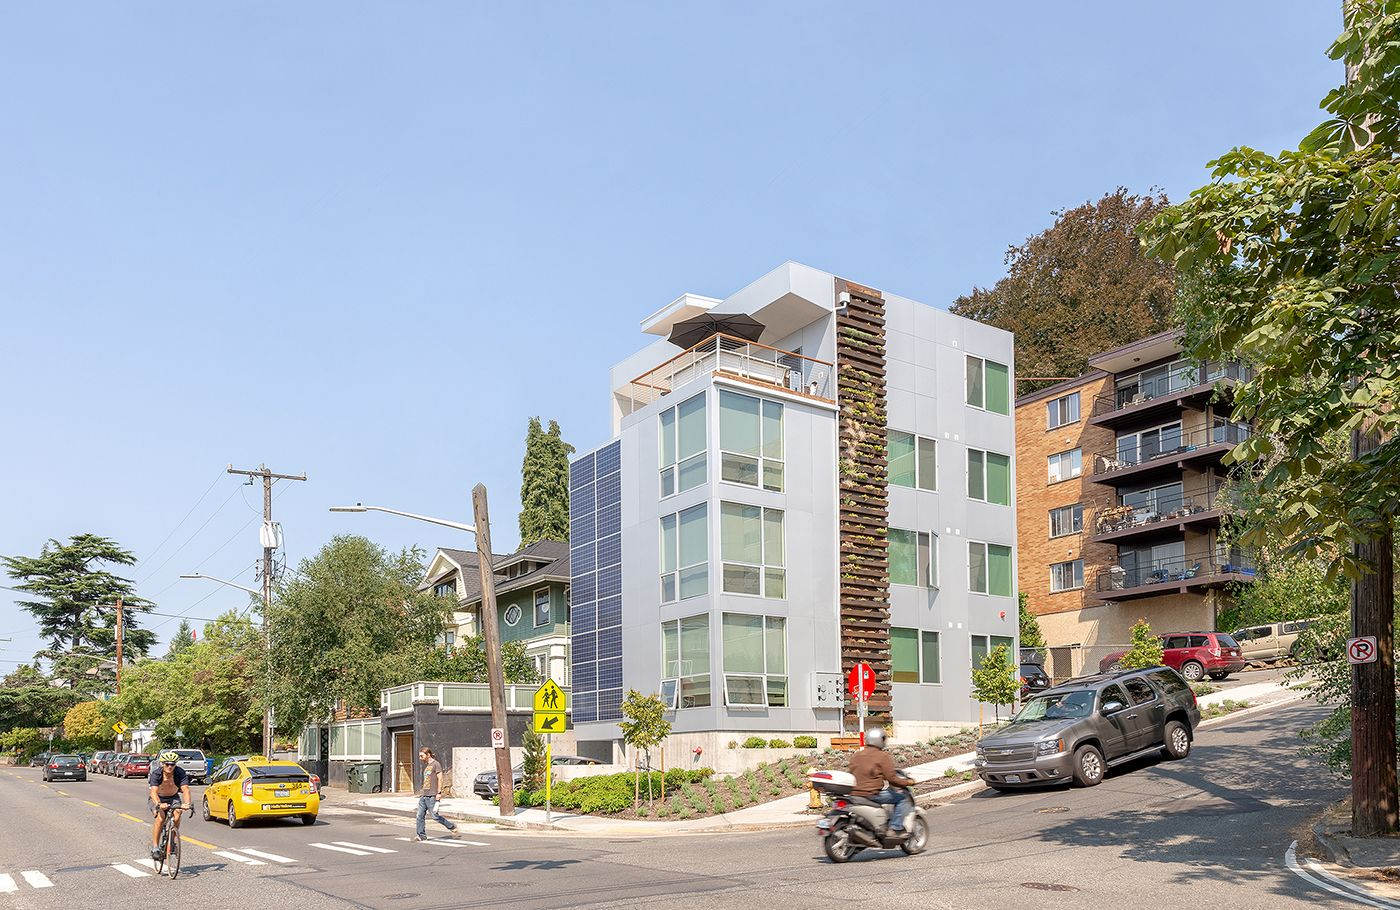 A New Four Story Apartment Building Has Replaced A Single Family House On A Tiny Capitol Hill Lot Just 2 600 Square Architecture Apartment Building Building